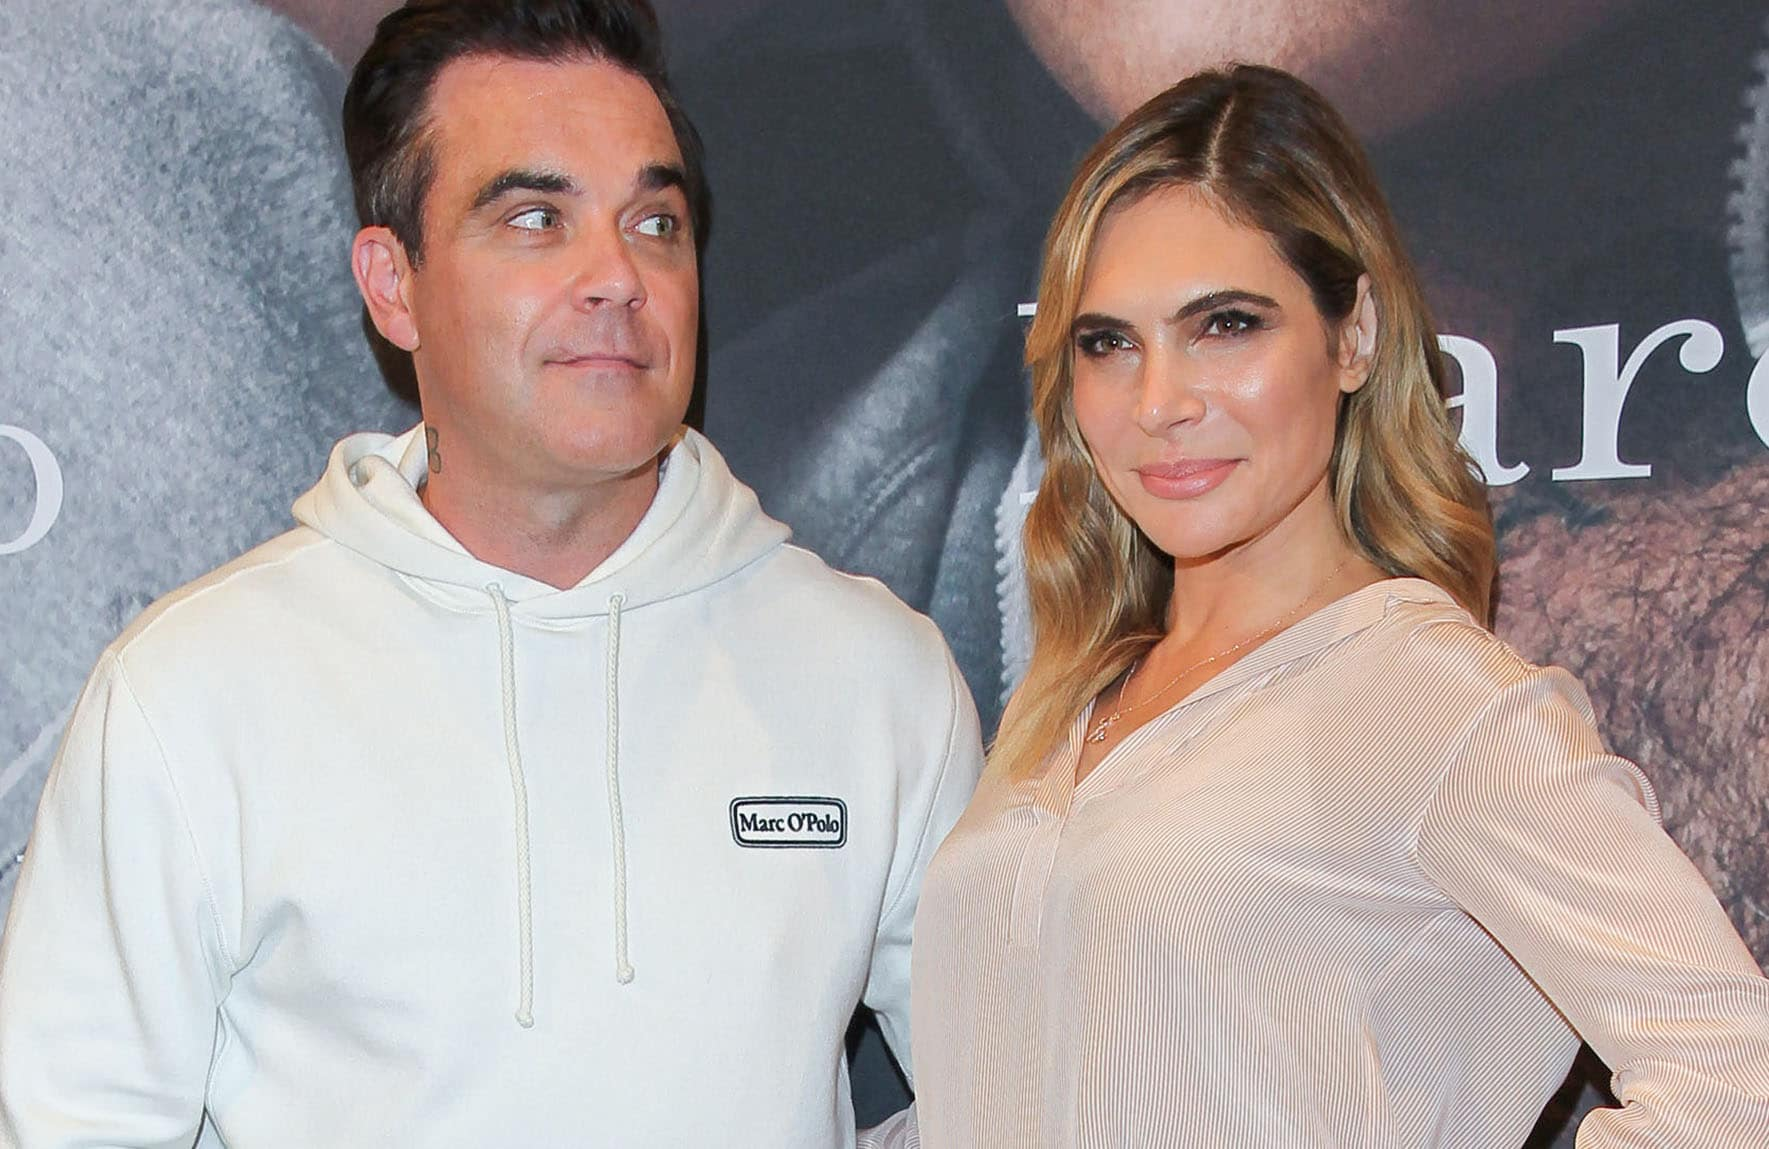 Robbie Williams, Ayda Field - Marc O'Polo Launches 50th Anniversary Special Edition Sweatshirt with Robbie Williams